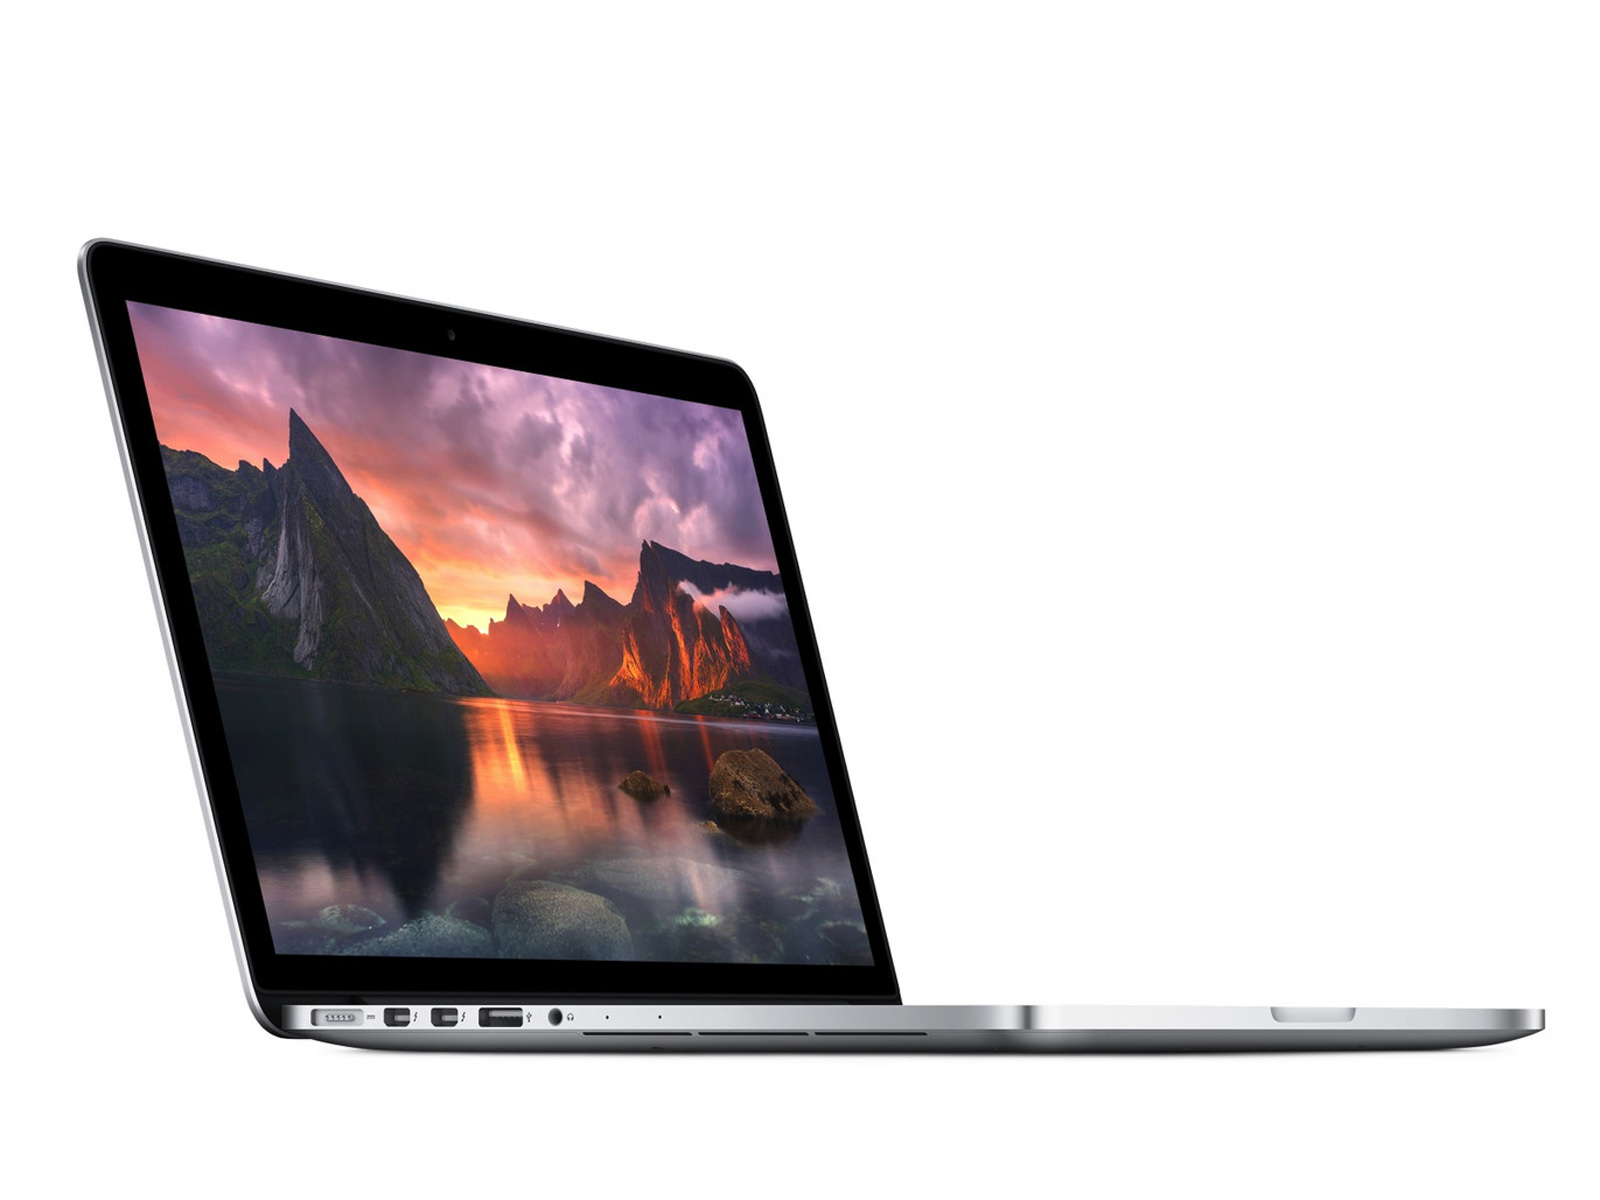 MacBook Pro 13-inch- Retina display